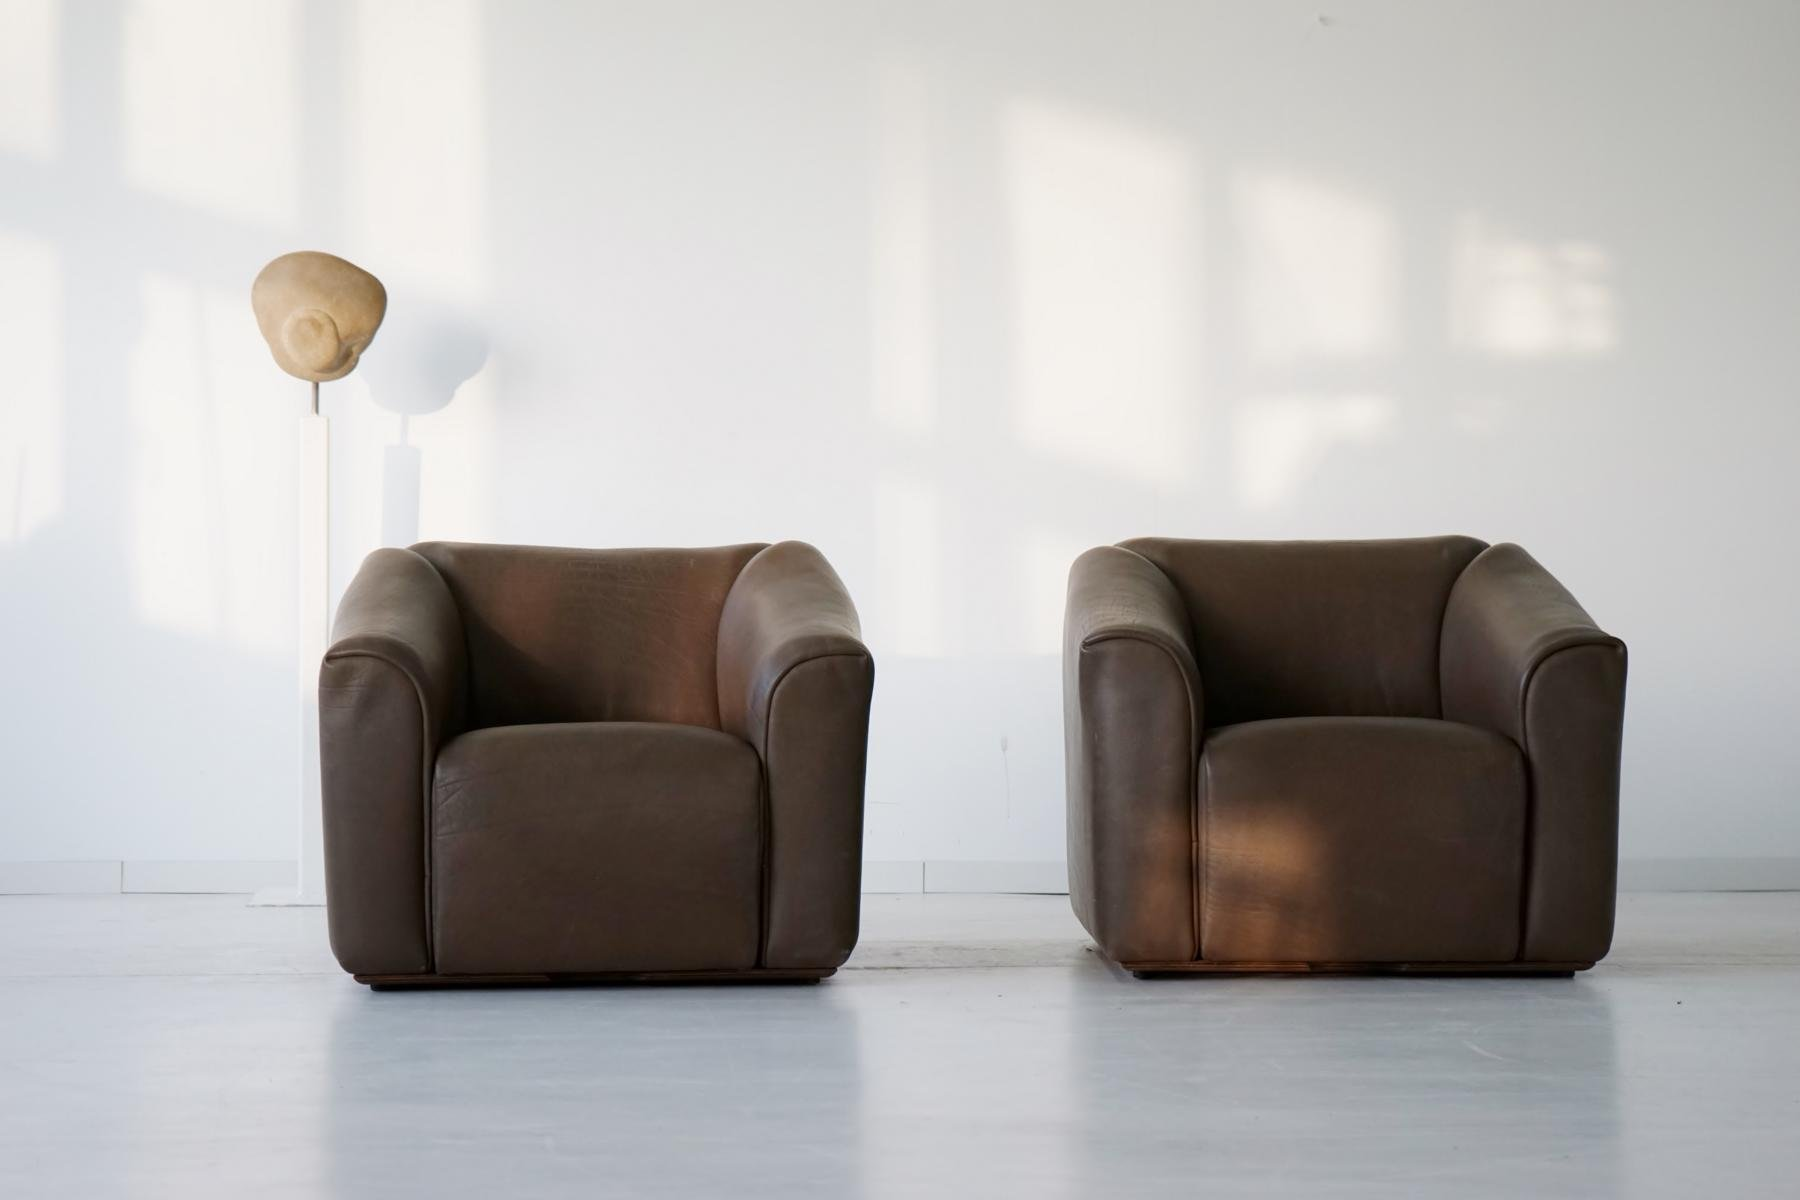 vintage ds 47 neck leather armchairs from de sede set of 2 for sale at pamono. Black Bedroom Furniture Sets. Home Design Ideas